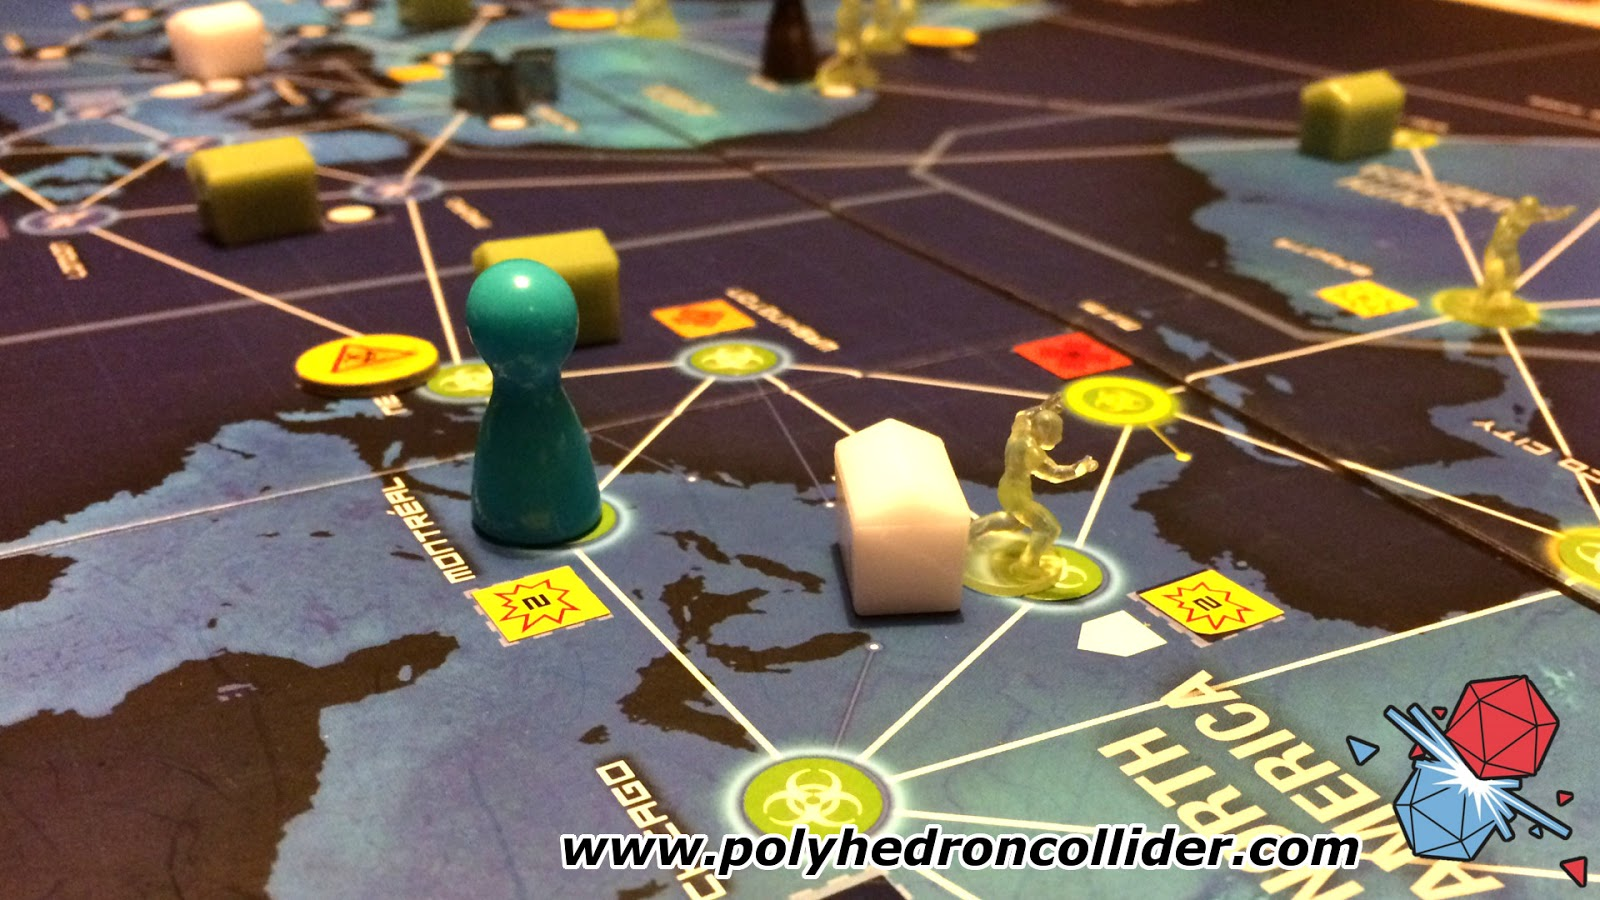 My Most Played Games of 2016 | Polyhedron Collider